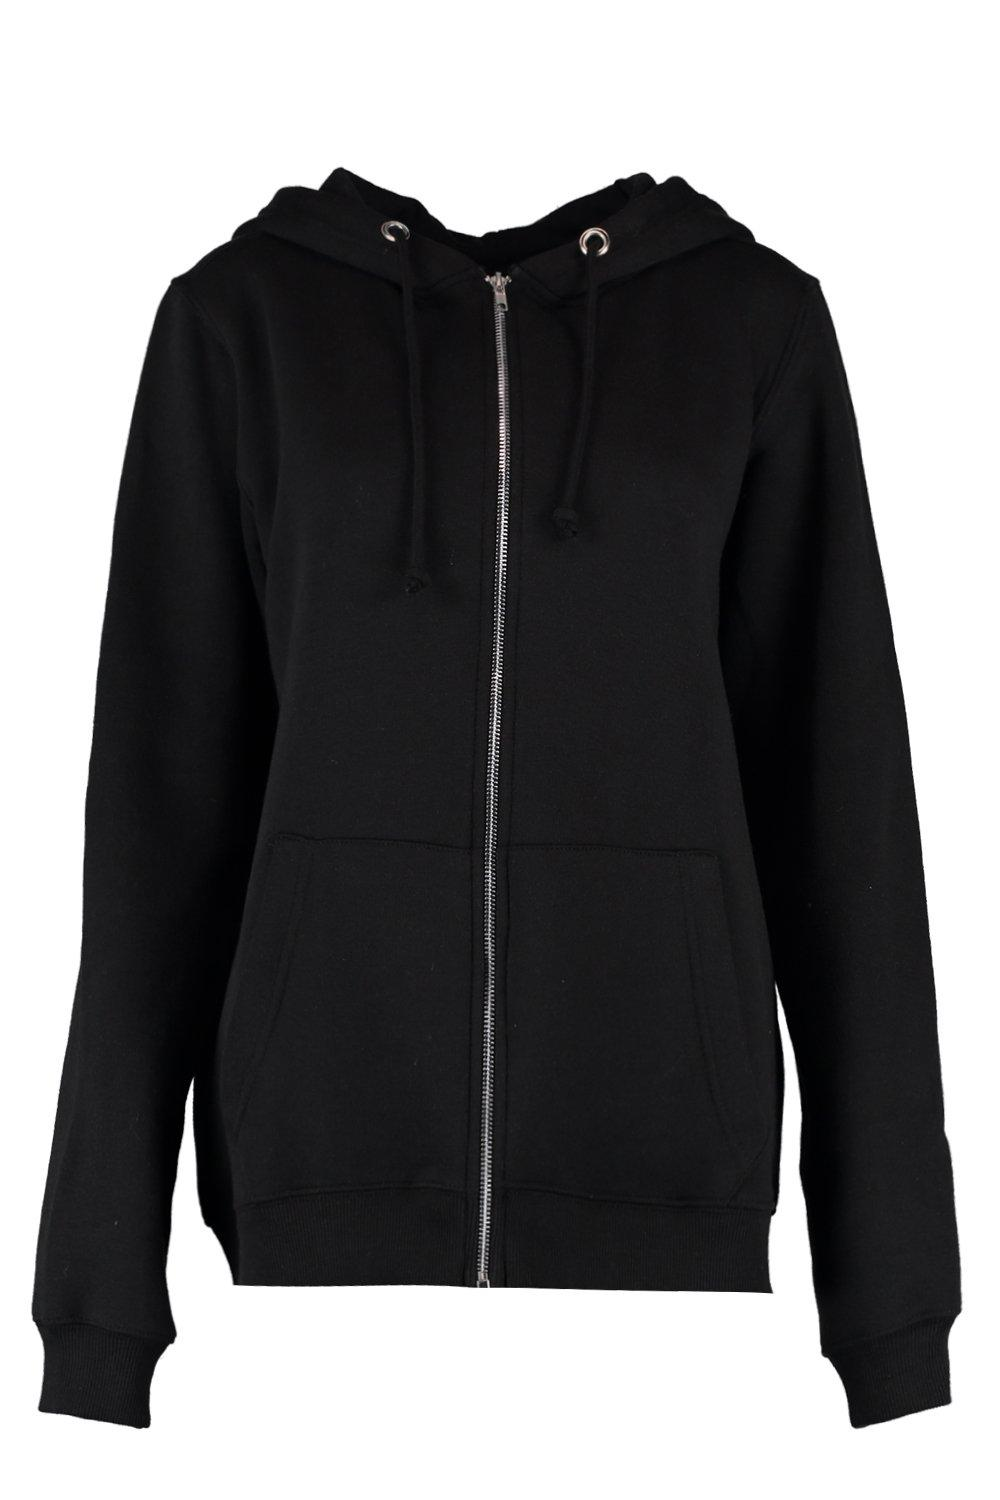 Hoodie Zip Tall black Hoodie black Tall Through Through Tall Zip Hoodie Through Zip 4TqH6xAwd4